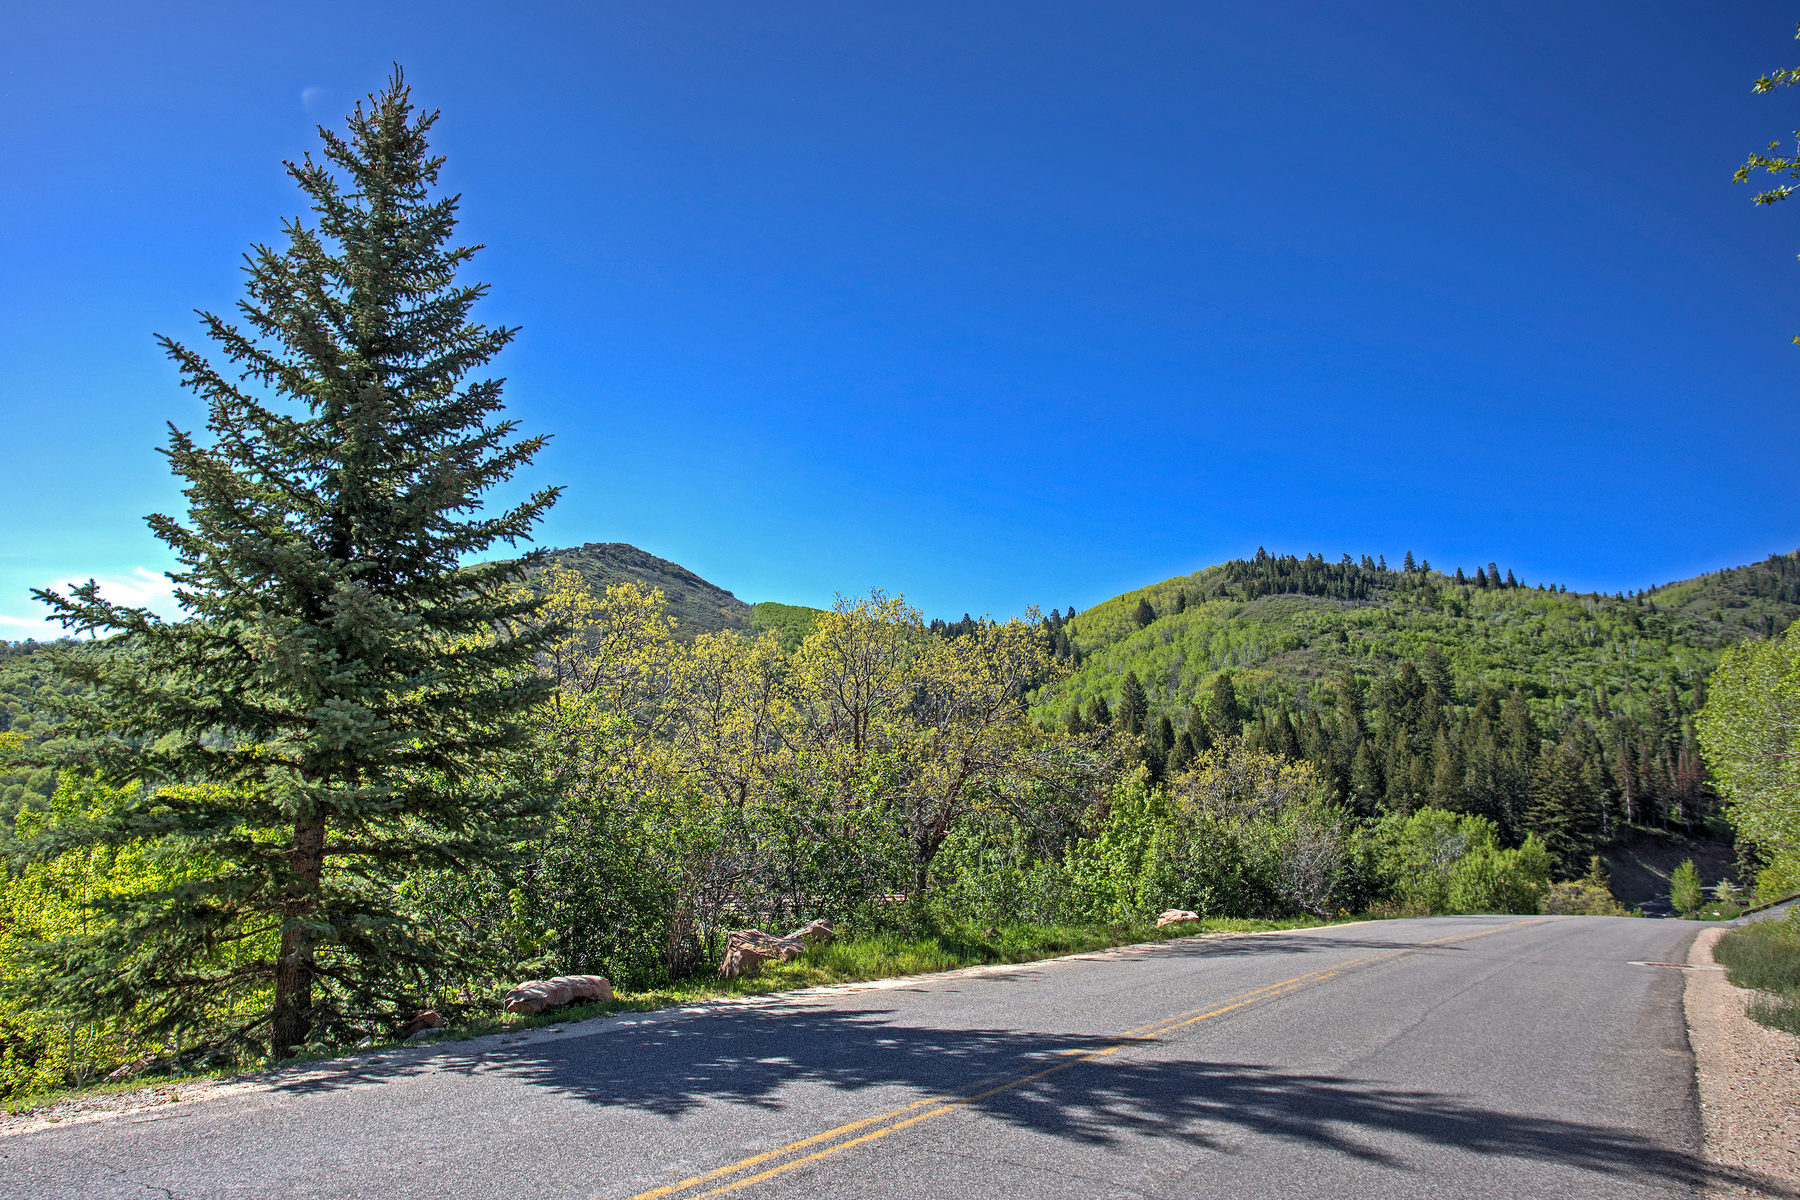 Terreno por un Venta en Spectacular View Lot Backing to Open Space and Trails 7111 N Stagecoach Rd Park City, Utah, 84098 Estados Unidos